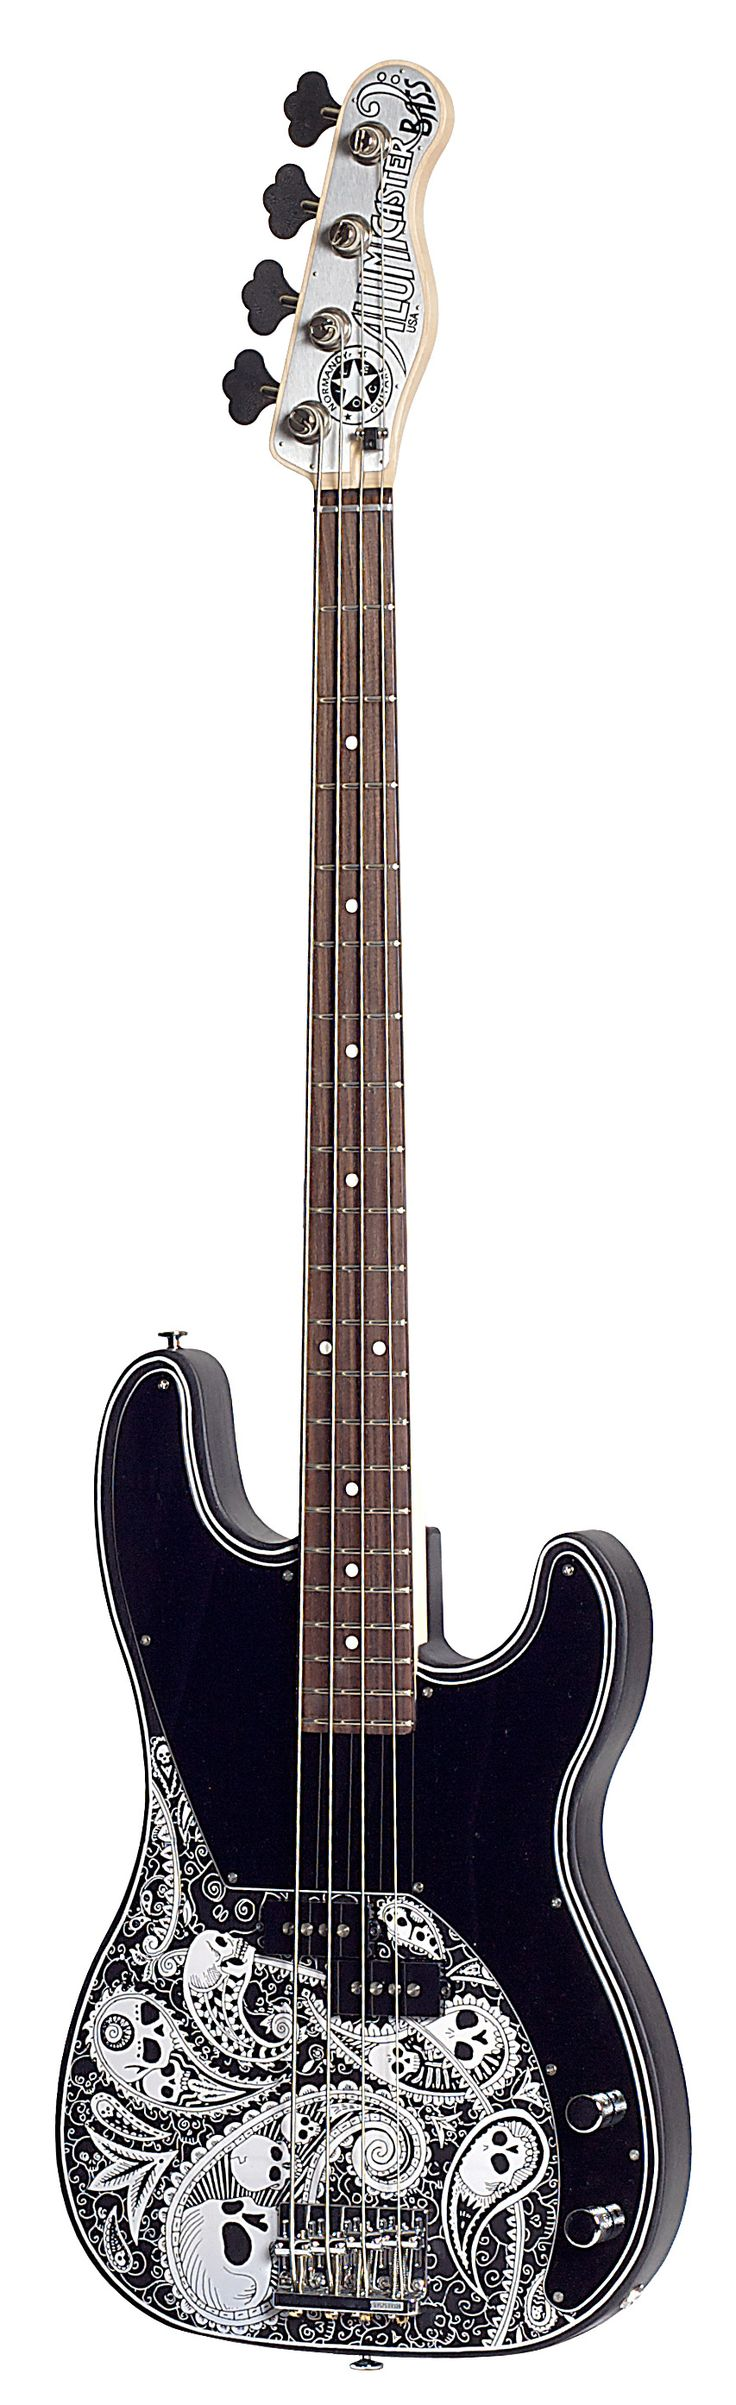 Normandy Alumicaster Paisley & Skulls Bass | Aluminium Body constructed of aircraft-grade material